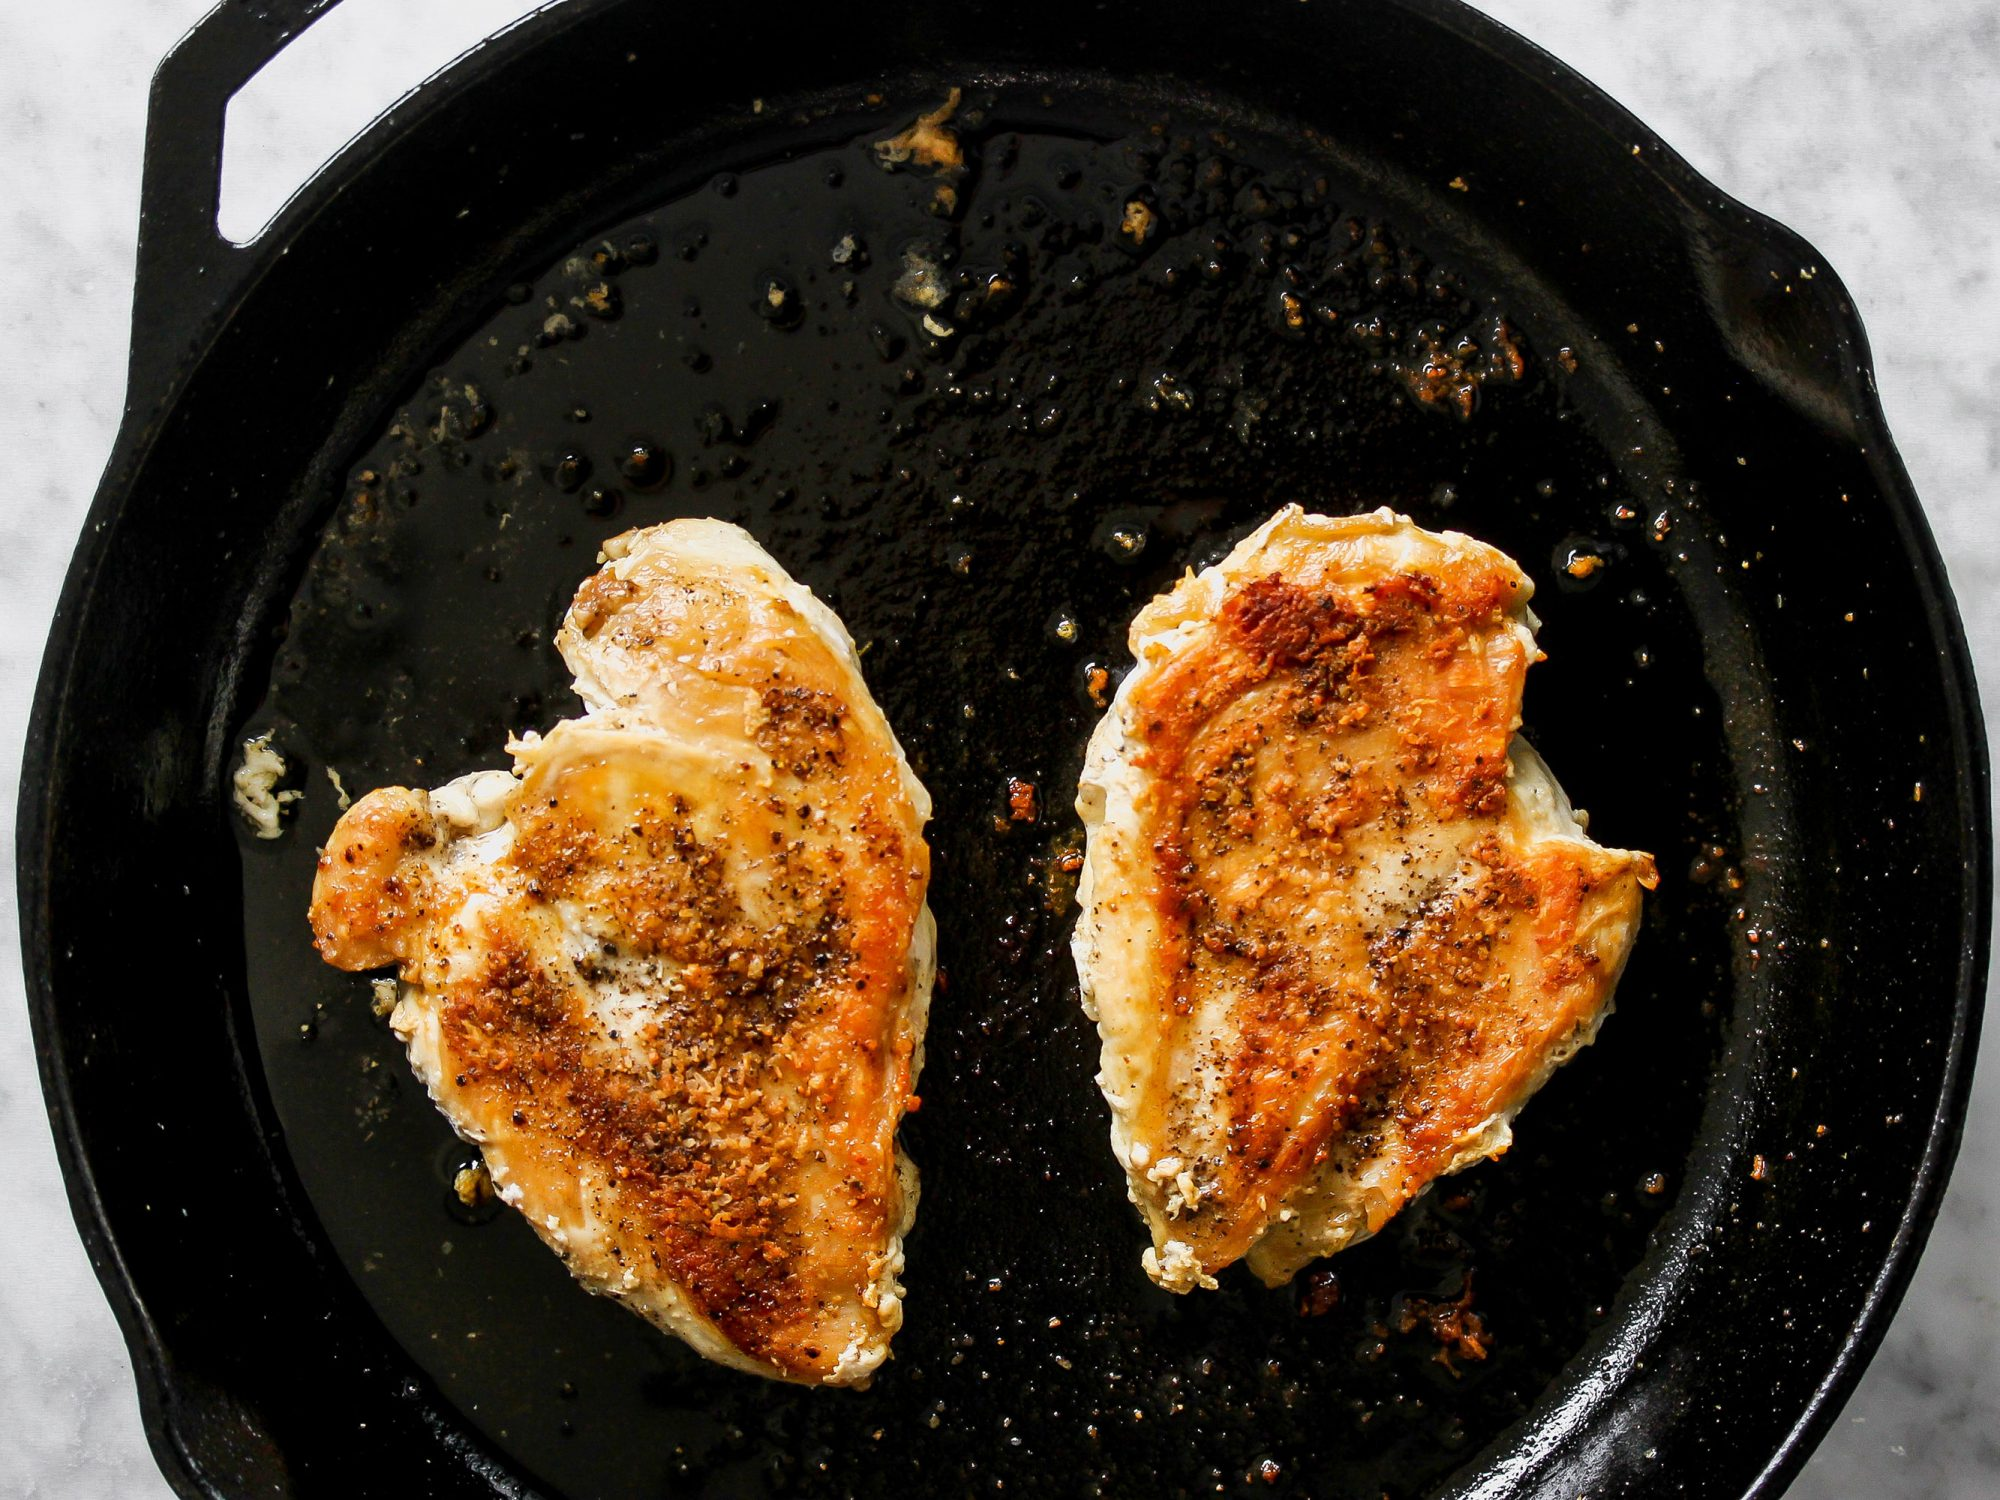 How to cook thin chicken breast in skillet